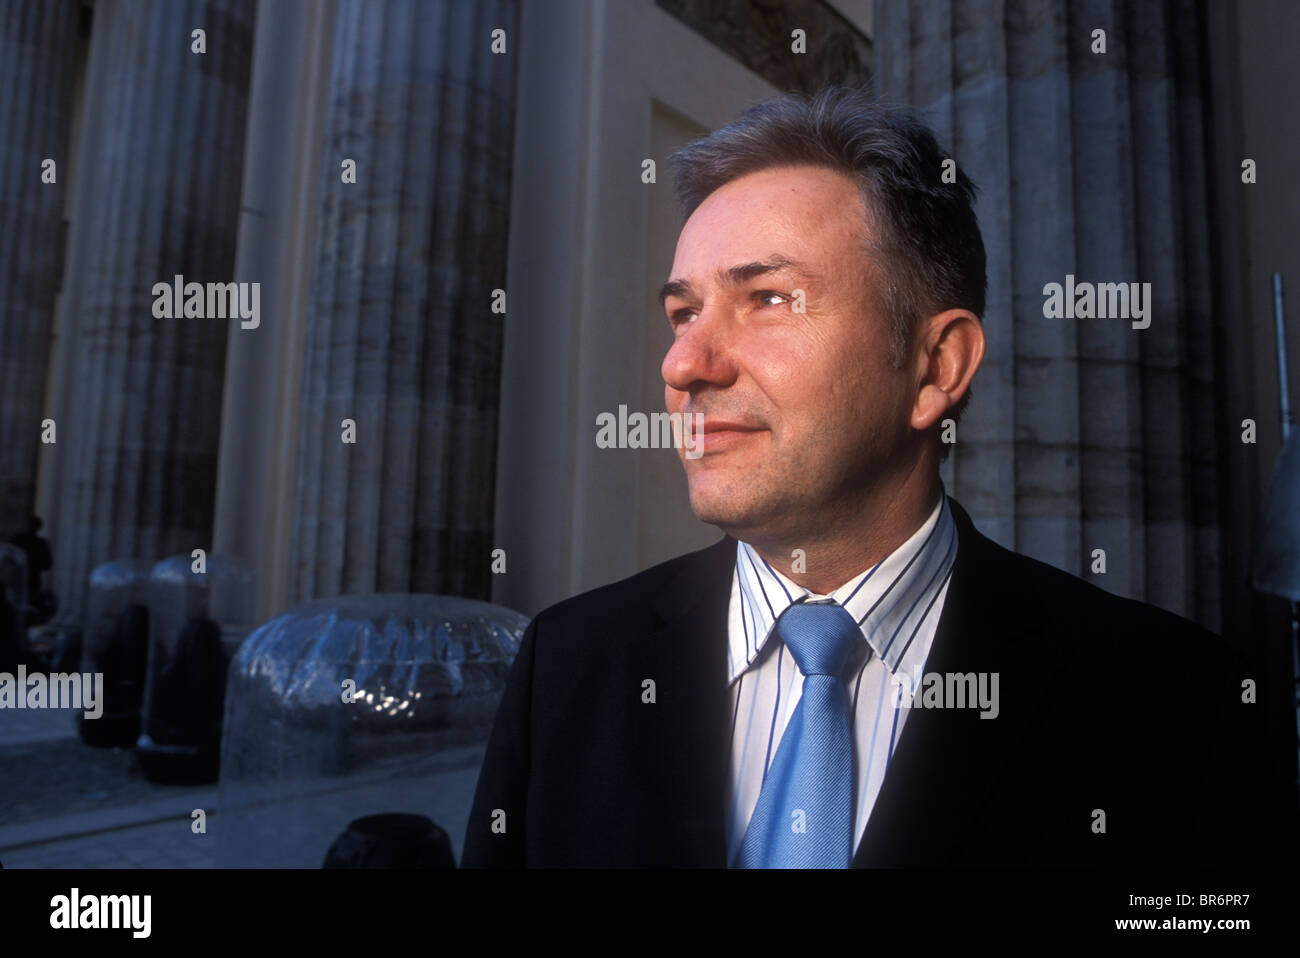 Berlin - Mayor Wowereit of Berlin Germany poses in front of the Brandenburg gate. Stock Photo